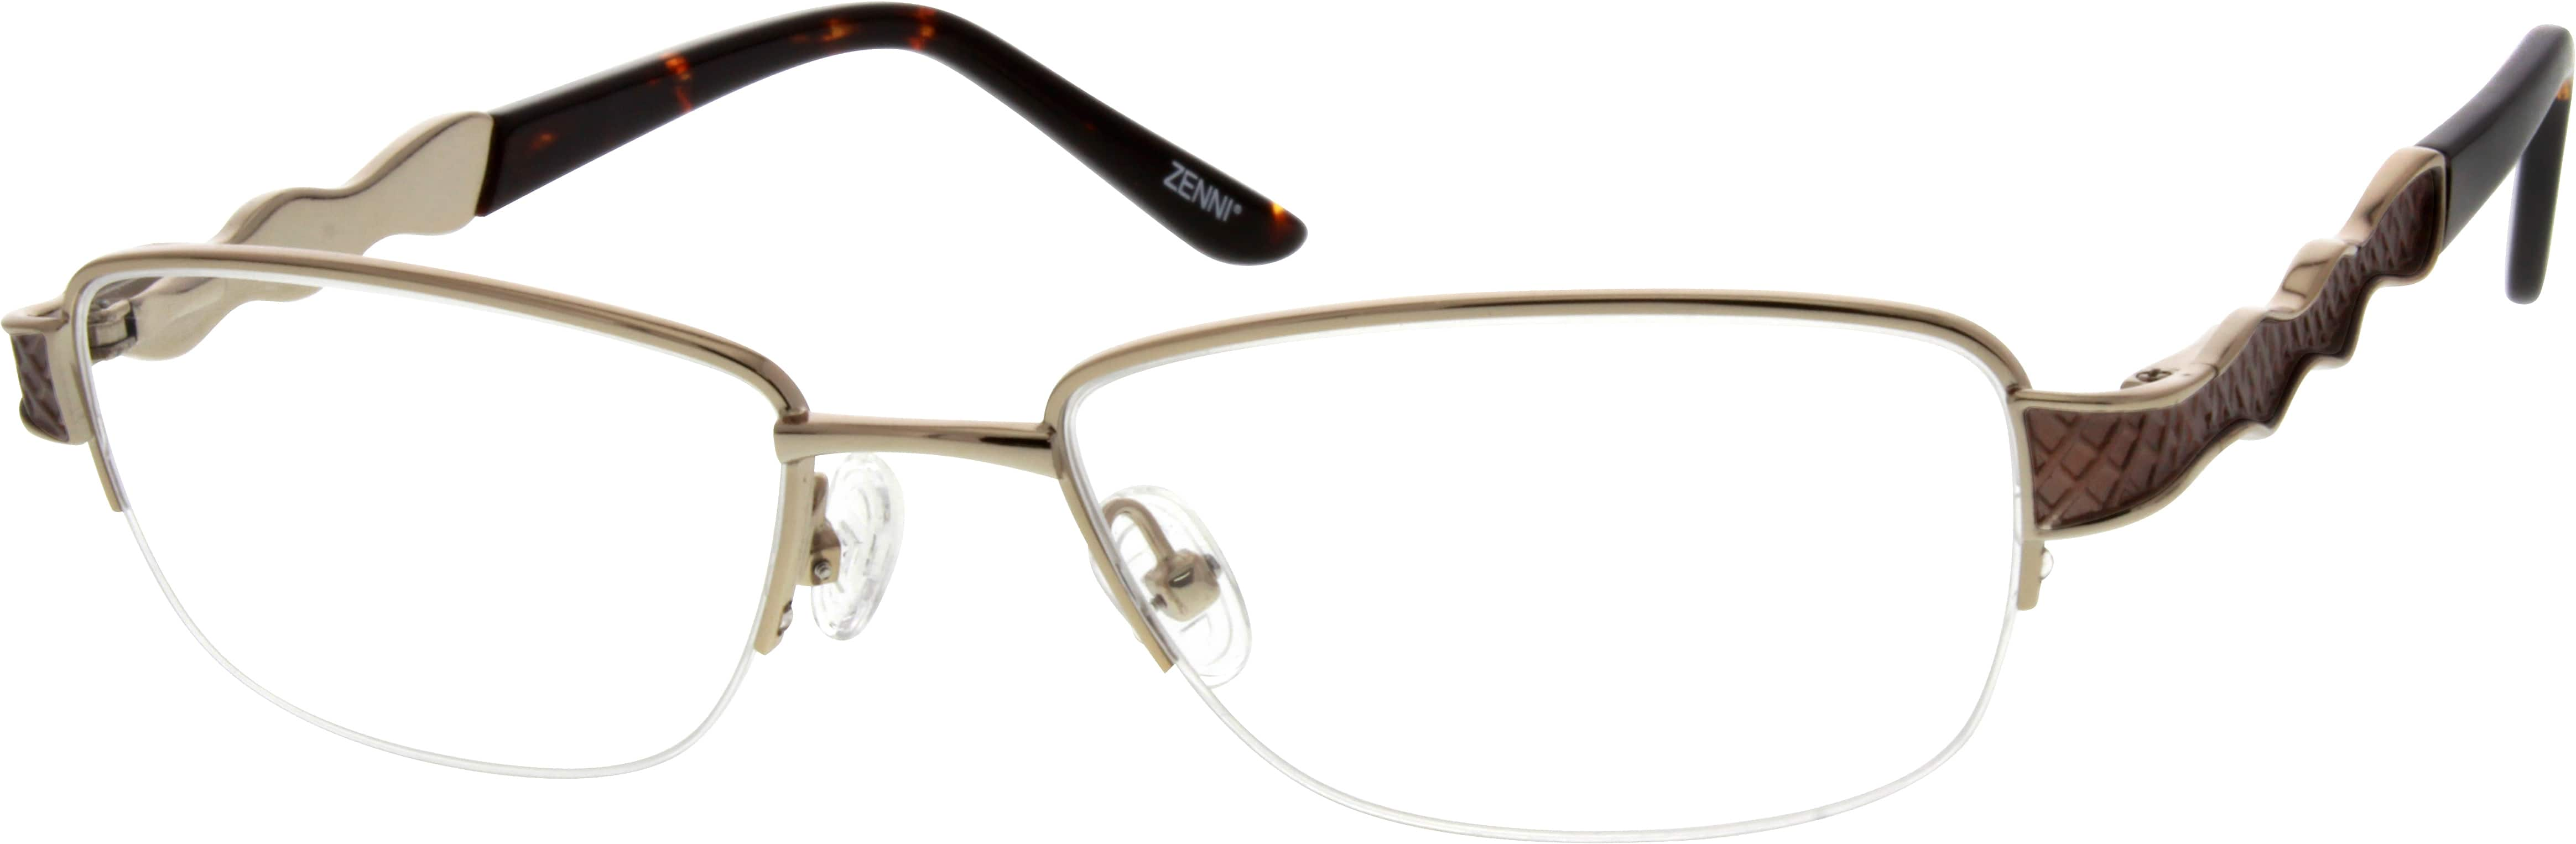 Women Half Rim Metal Eyeglasses #558811